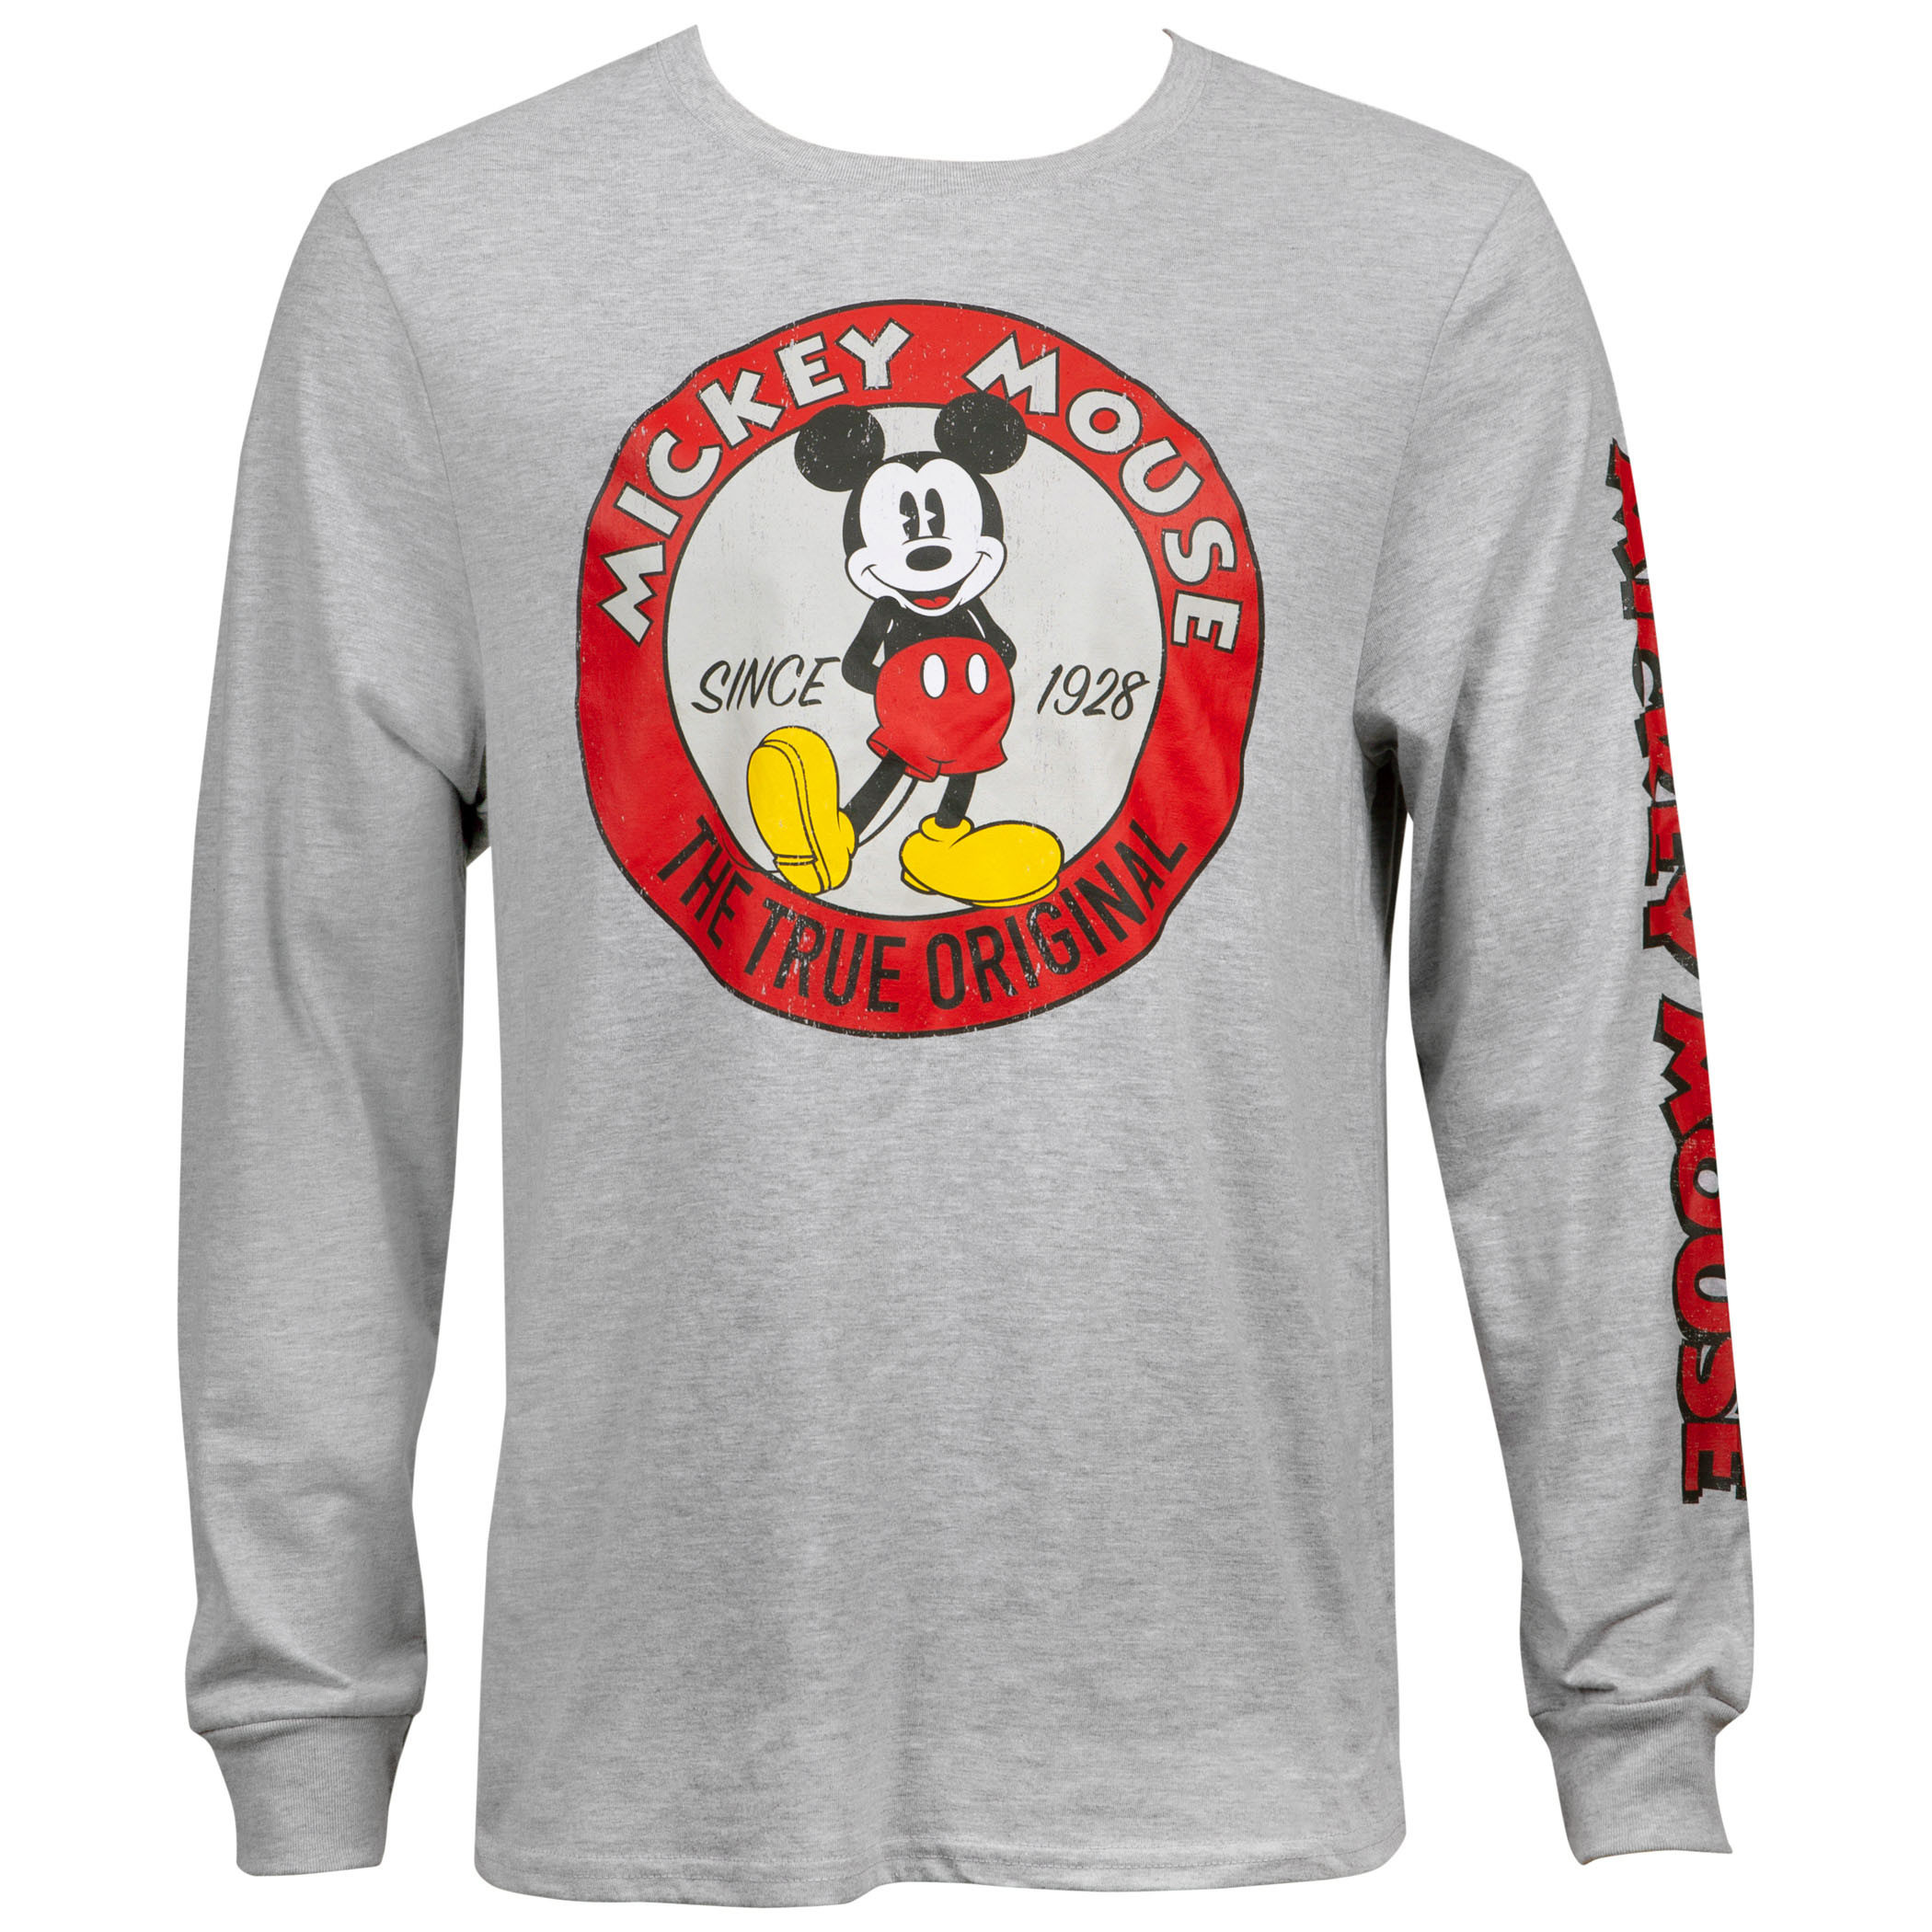 Mickey Mouse True Original Long Sleeve Shirt